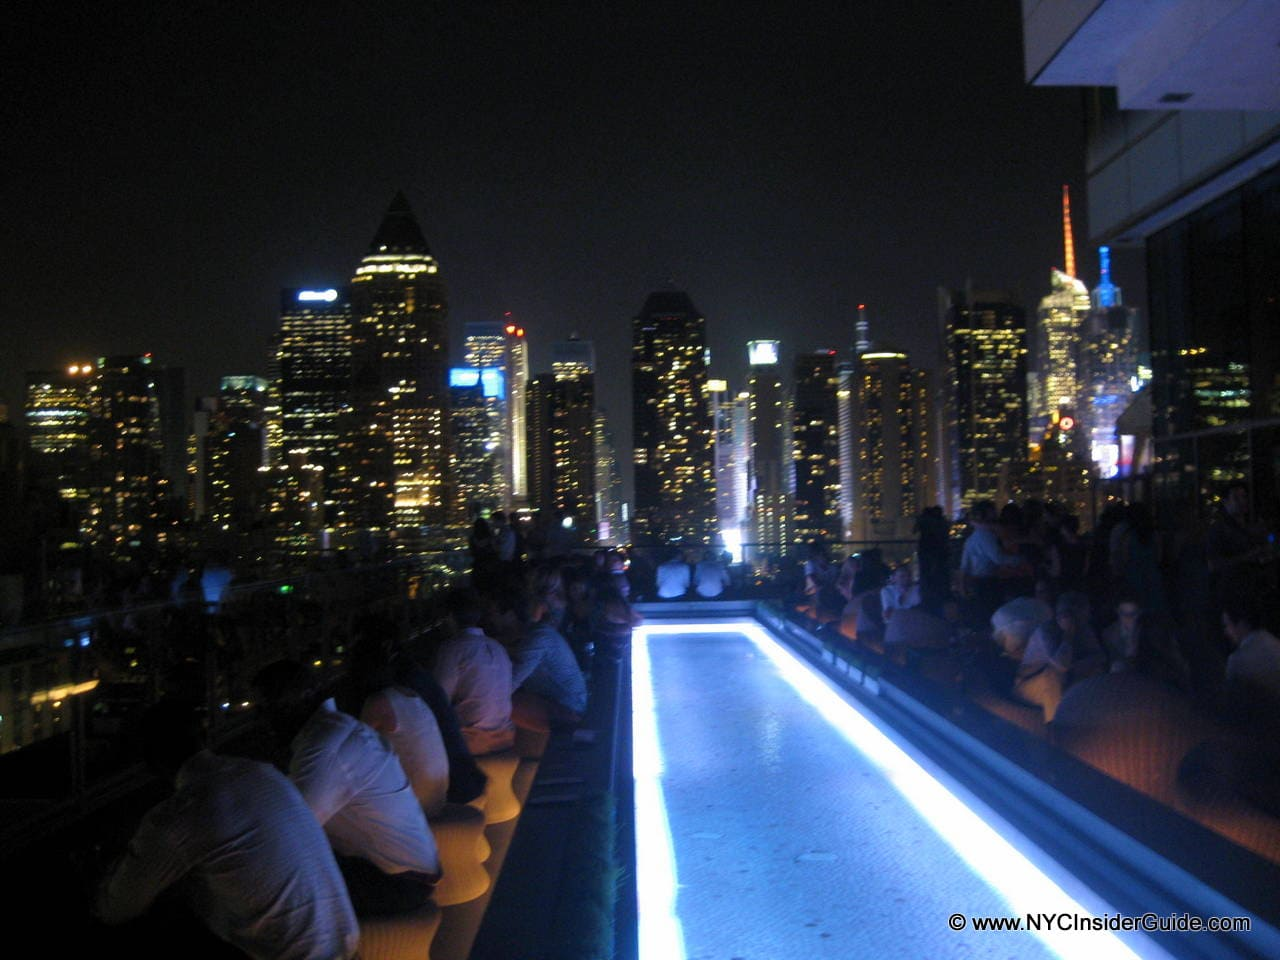 Hotels with Views of NYC July 4th Fireworks